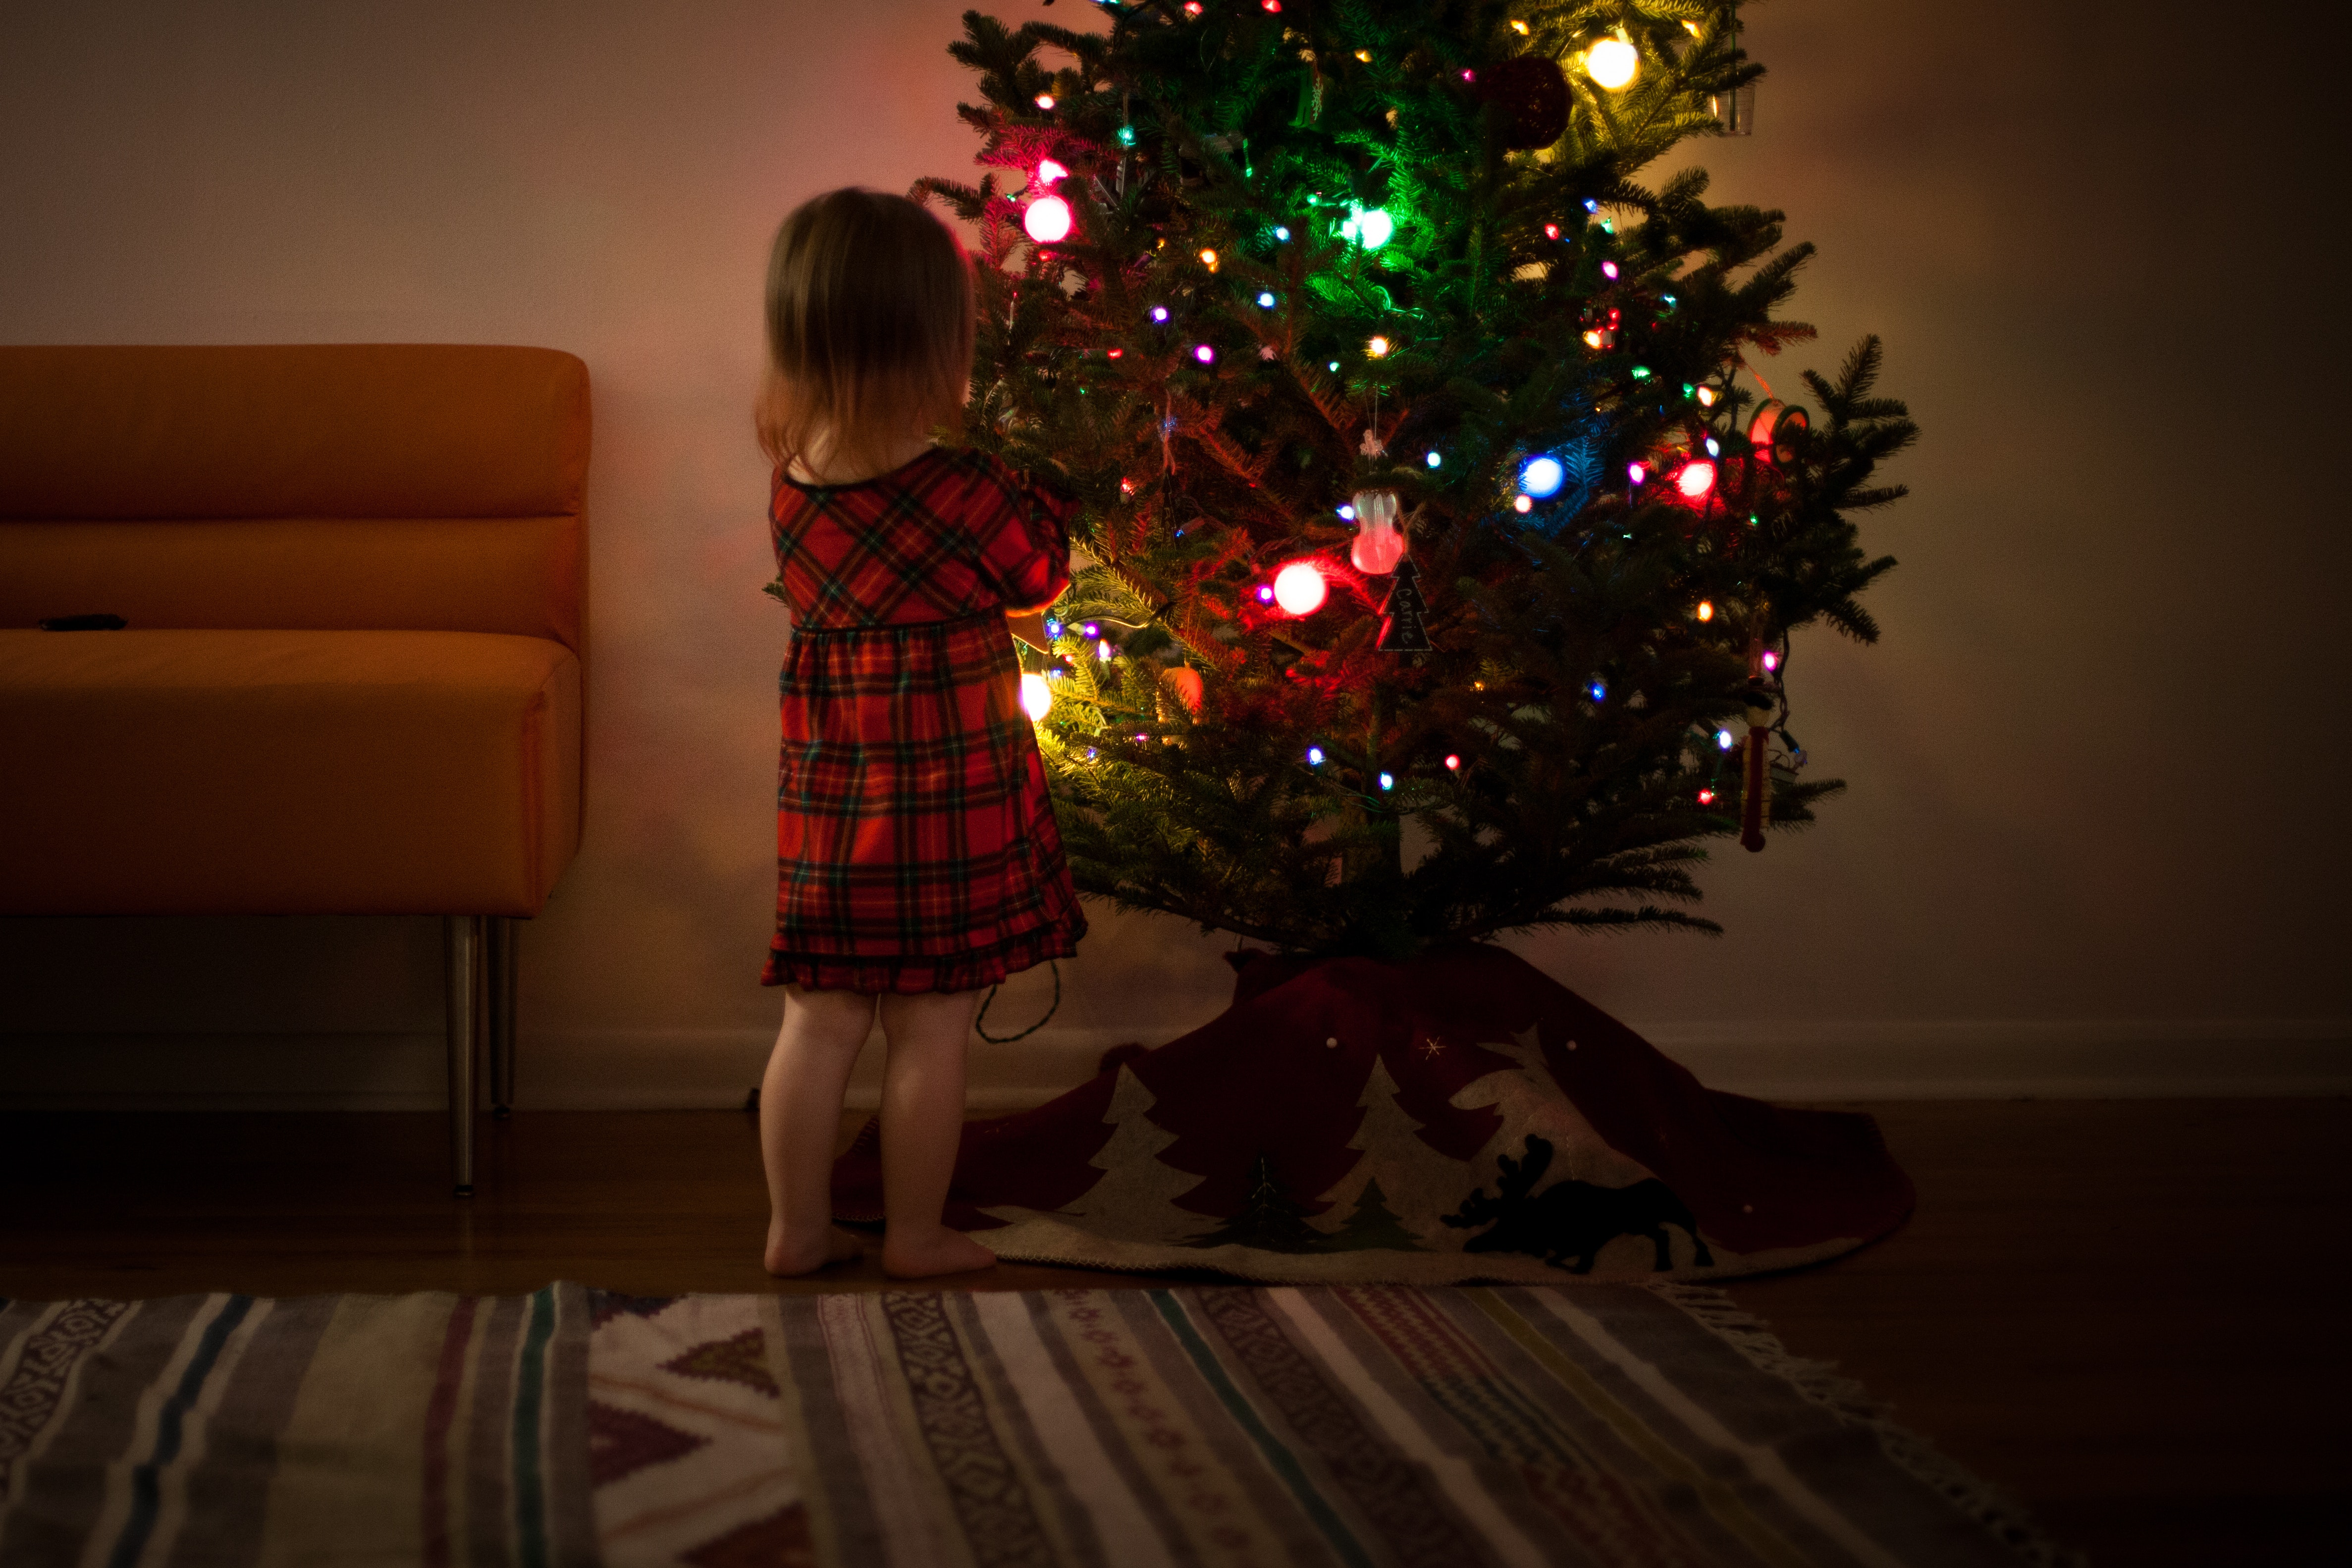 Girl in Red and Black Dress Standing in Front of Christmas Tree Inside Room, Adult, Furniture, Wear, Tree, HQ Photo